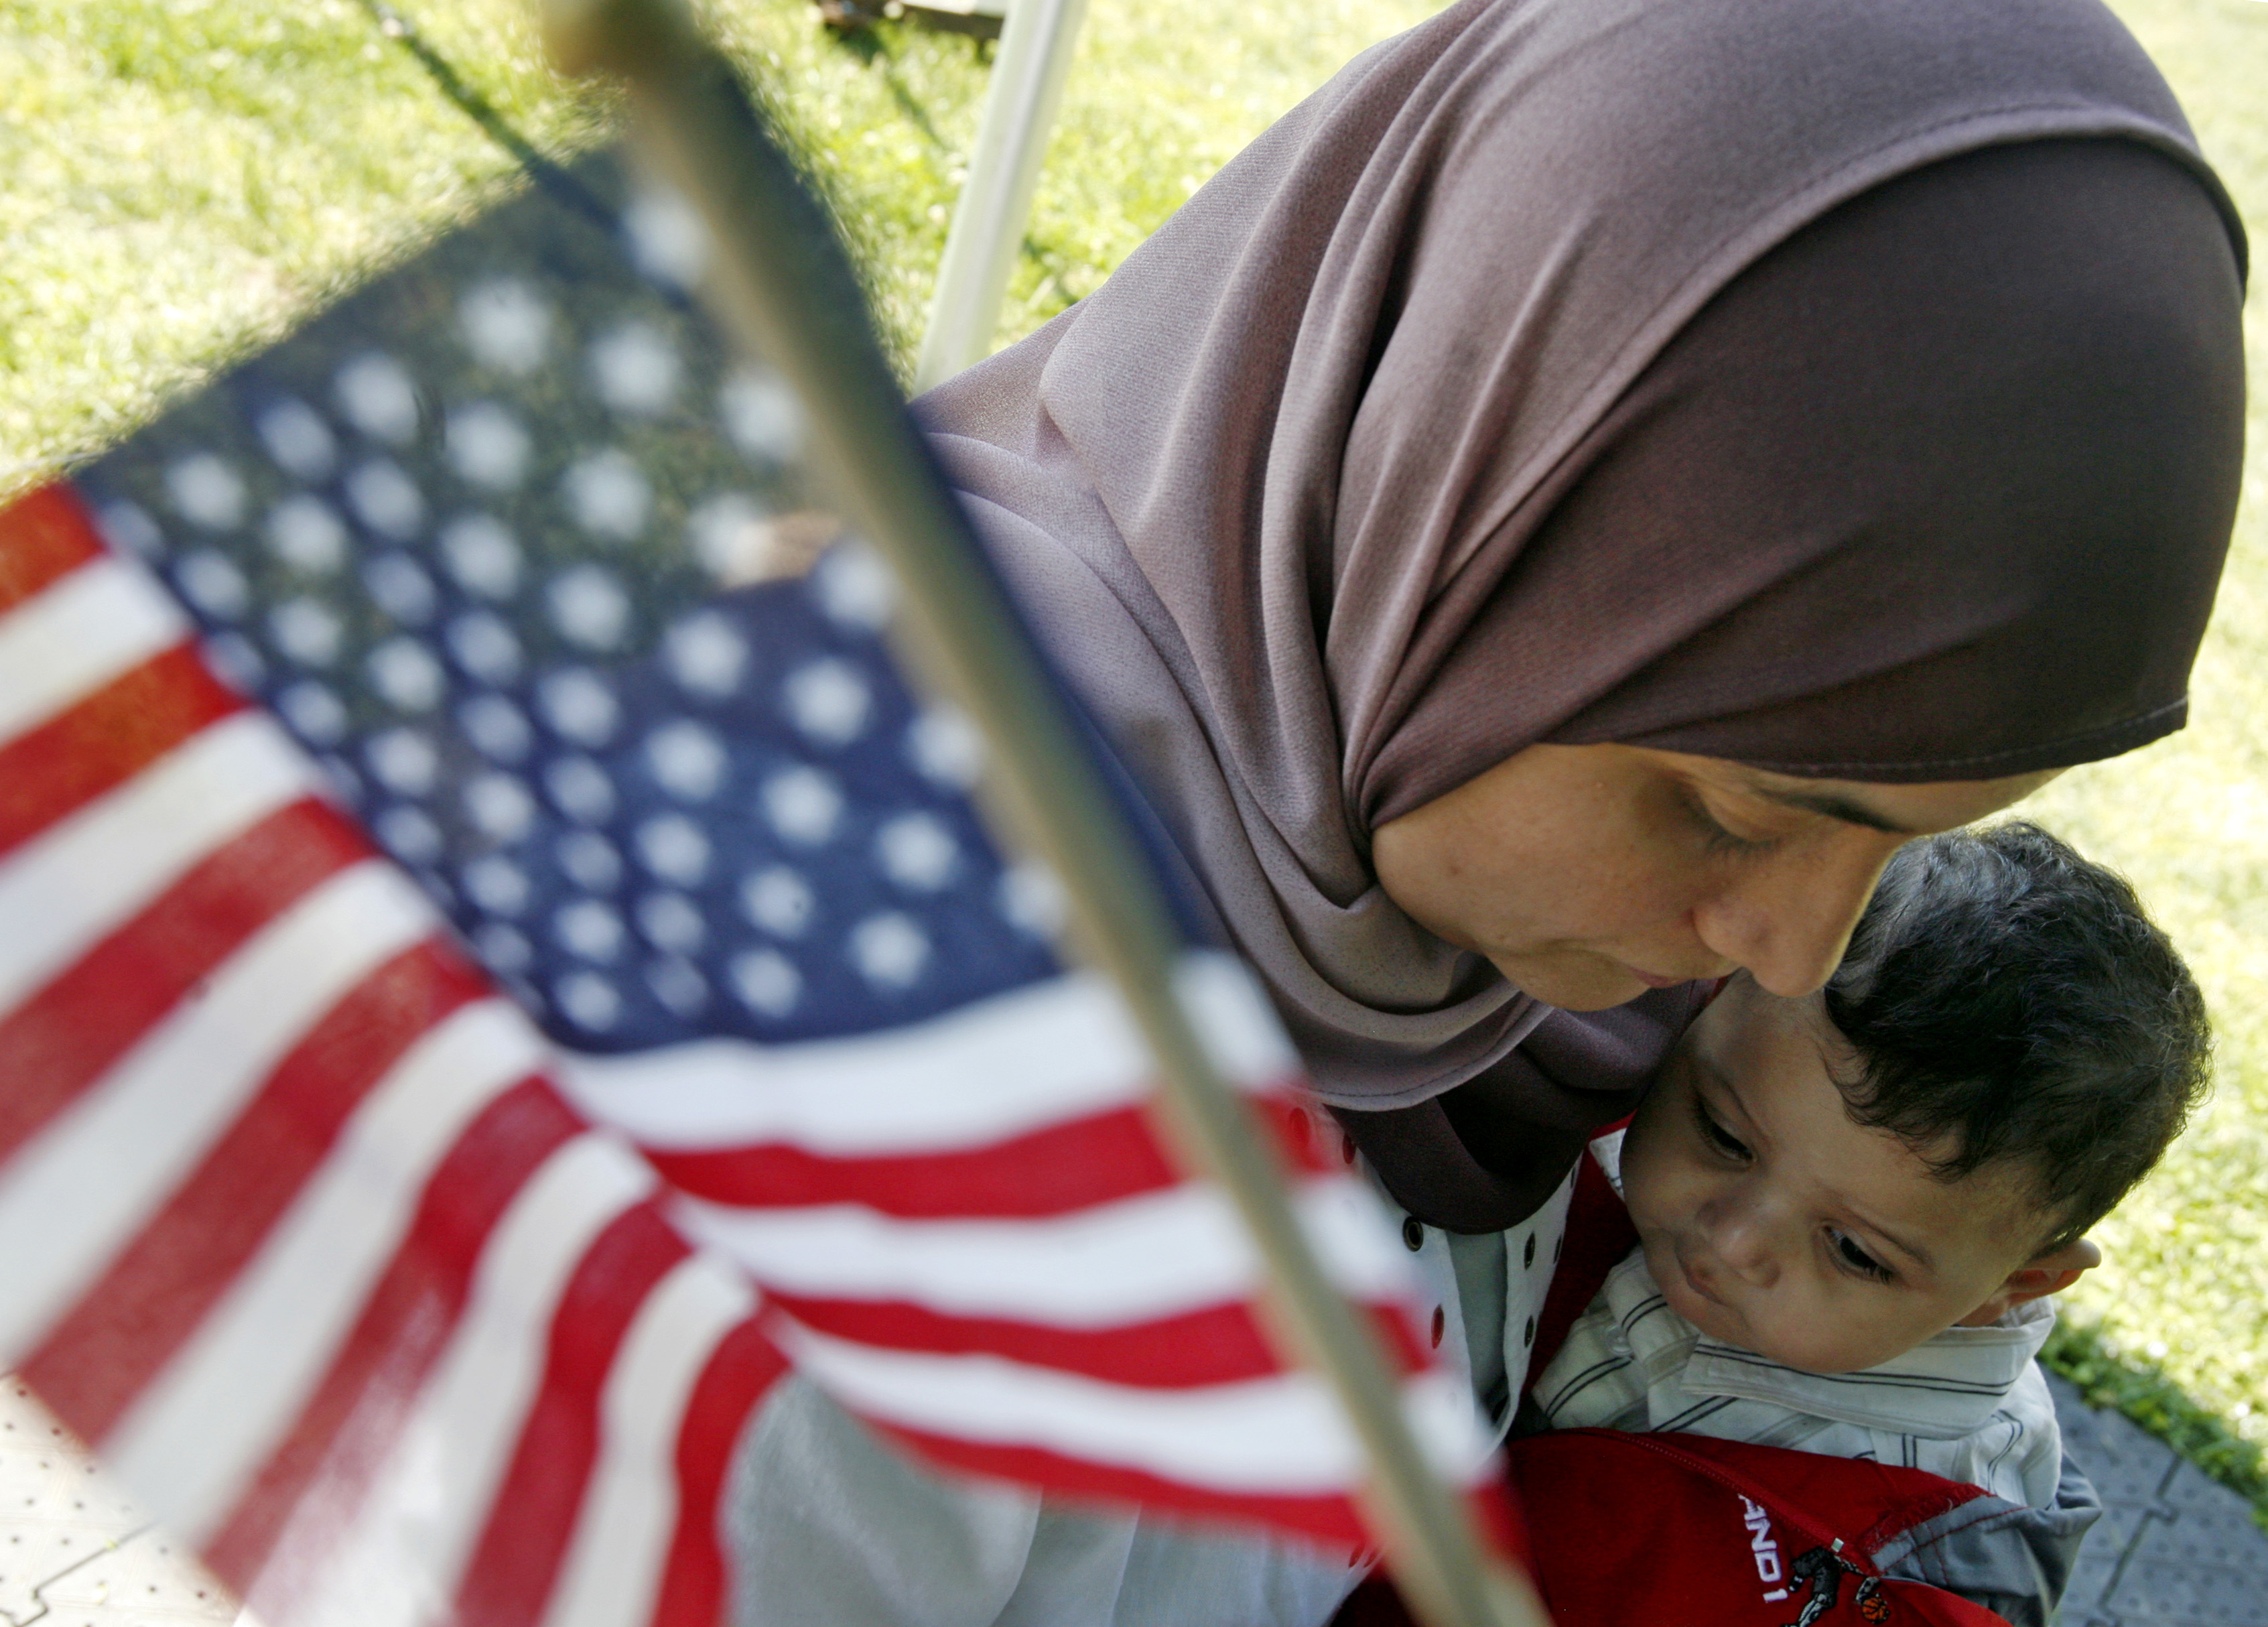 Mezry of Morocco hugs her son after taking the oath of citizenship in Mount Vernon